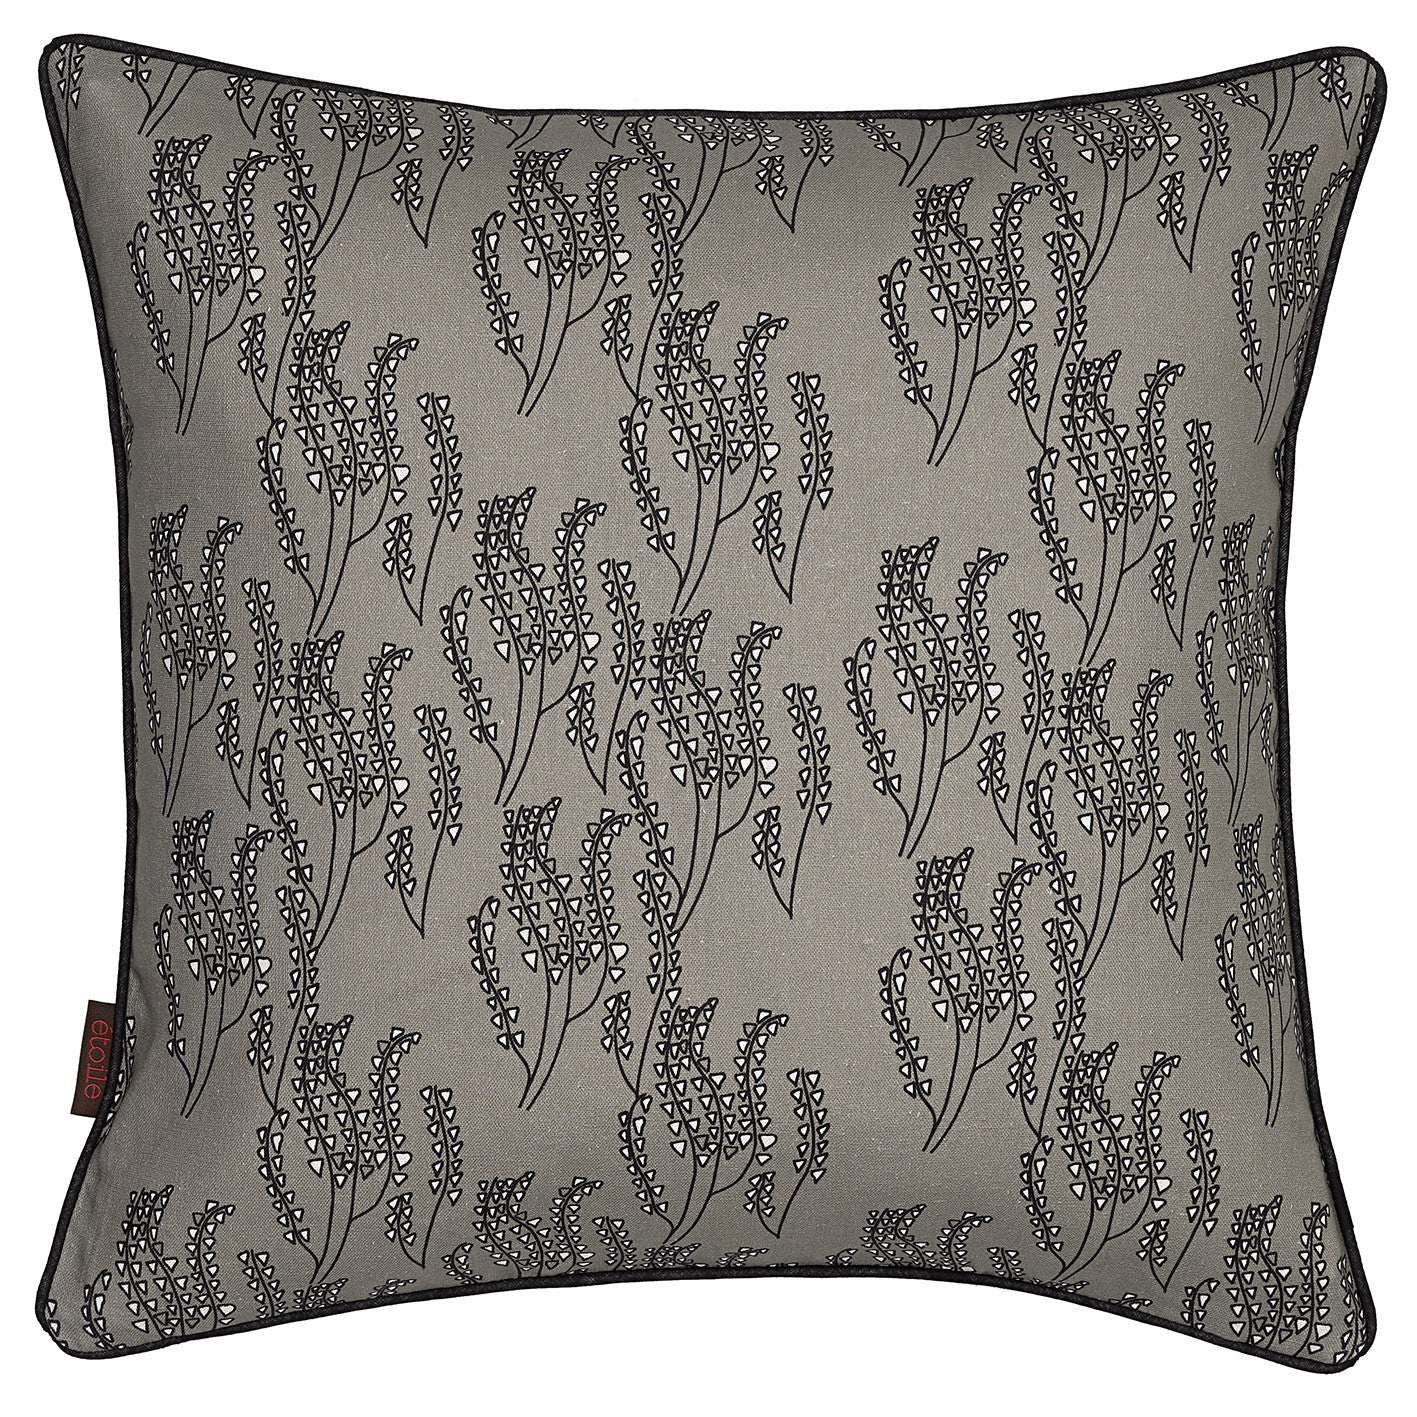 Maricopa Floral Pattern Linen Cotton Cushion in Dove Grey & Black